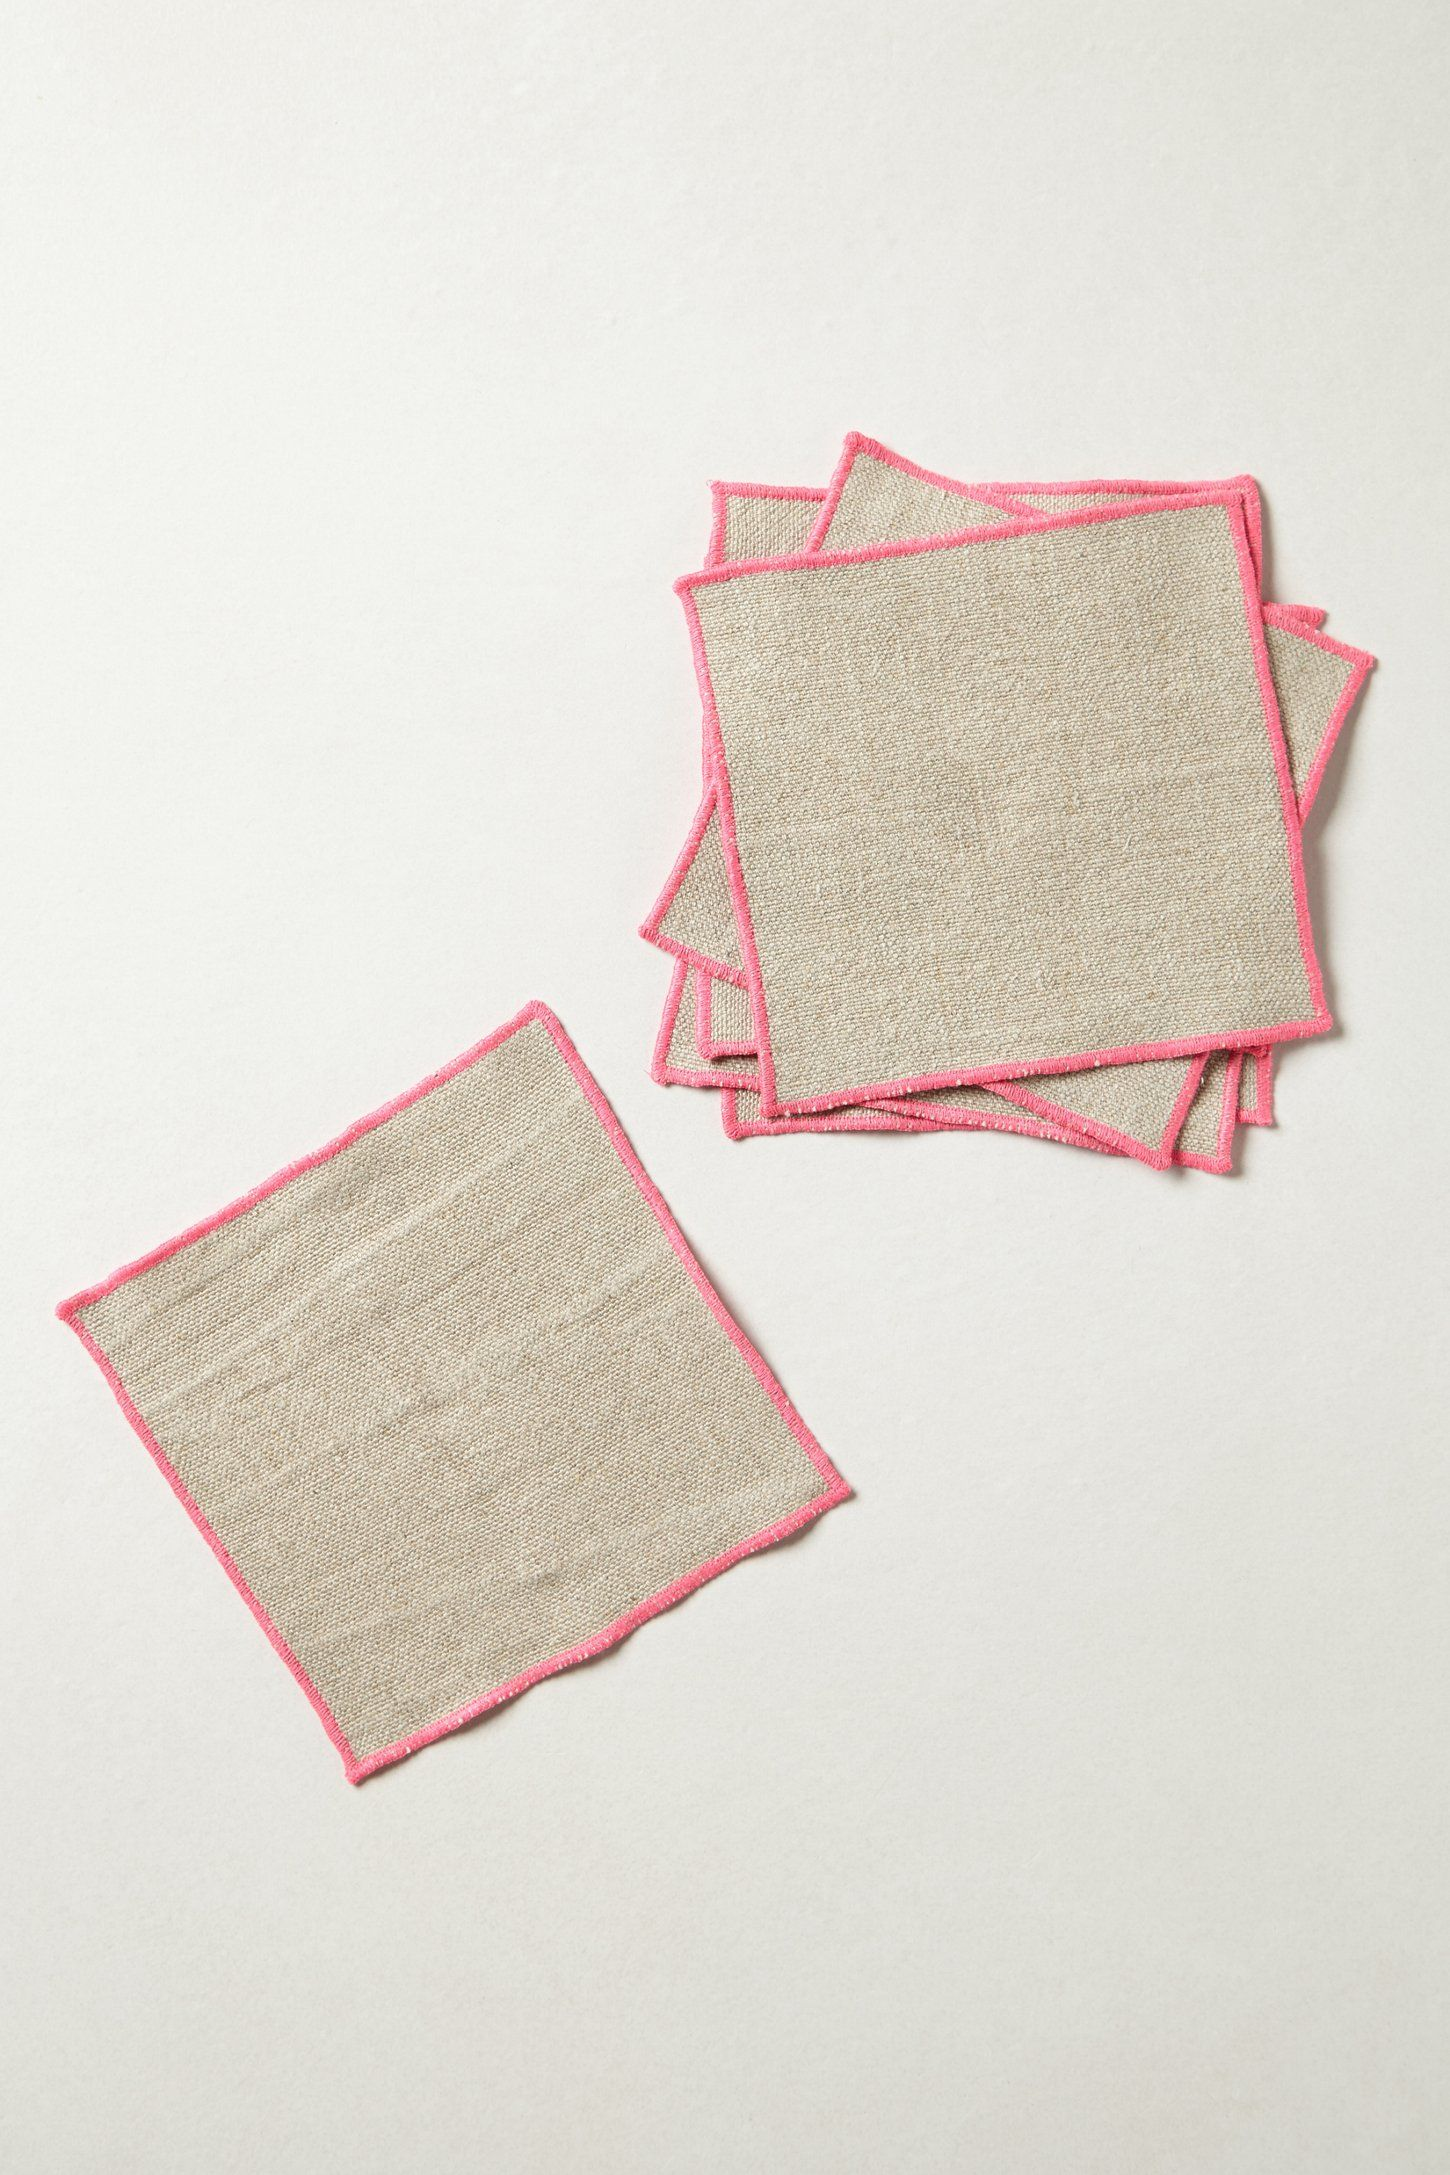 "Neon Border Cocktail Napkins - anthropologie.com -- These would be tremendously easy to DIY with a serger. 6"" square, set of 6 $28 from Anthro"